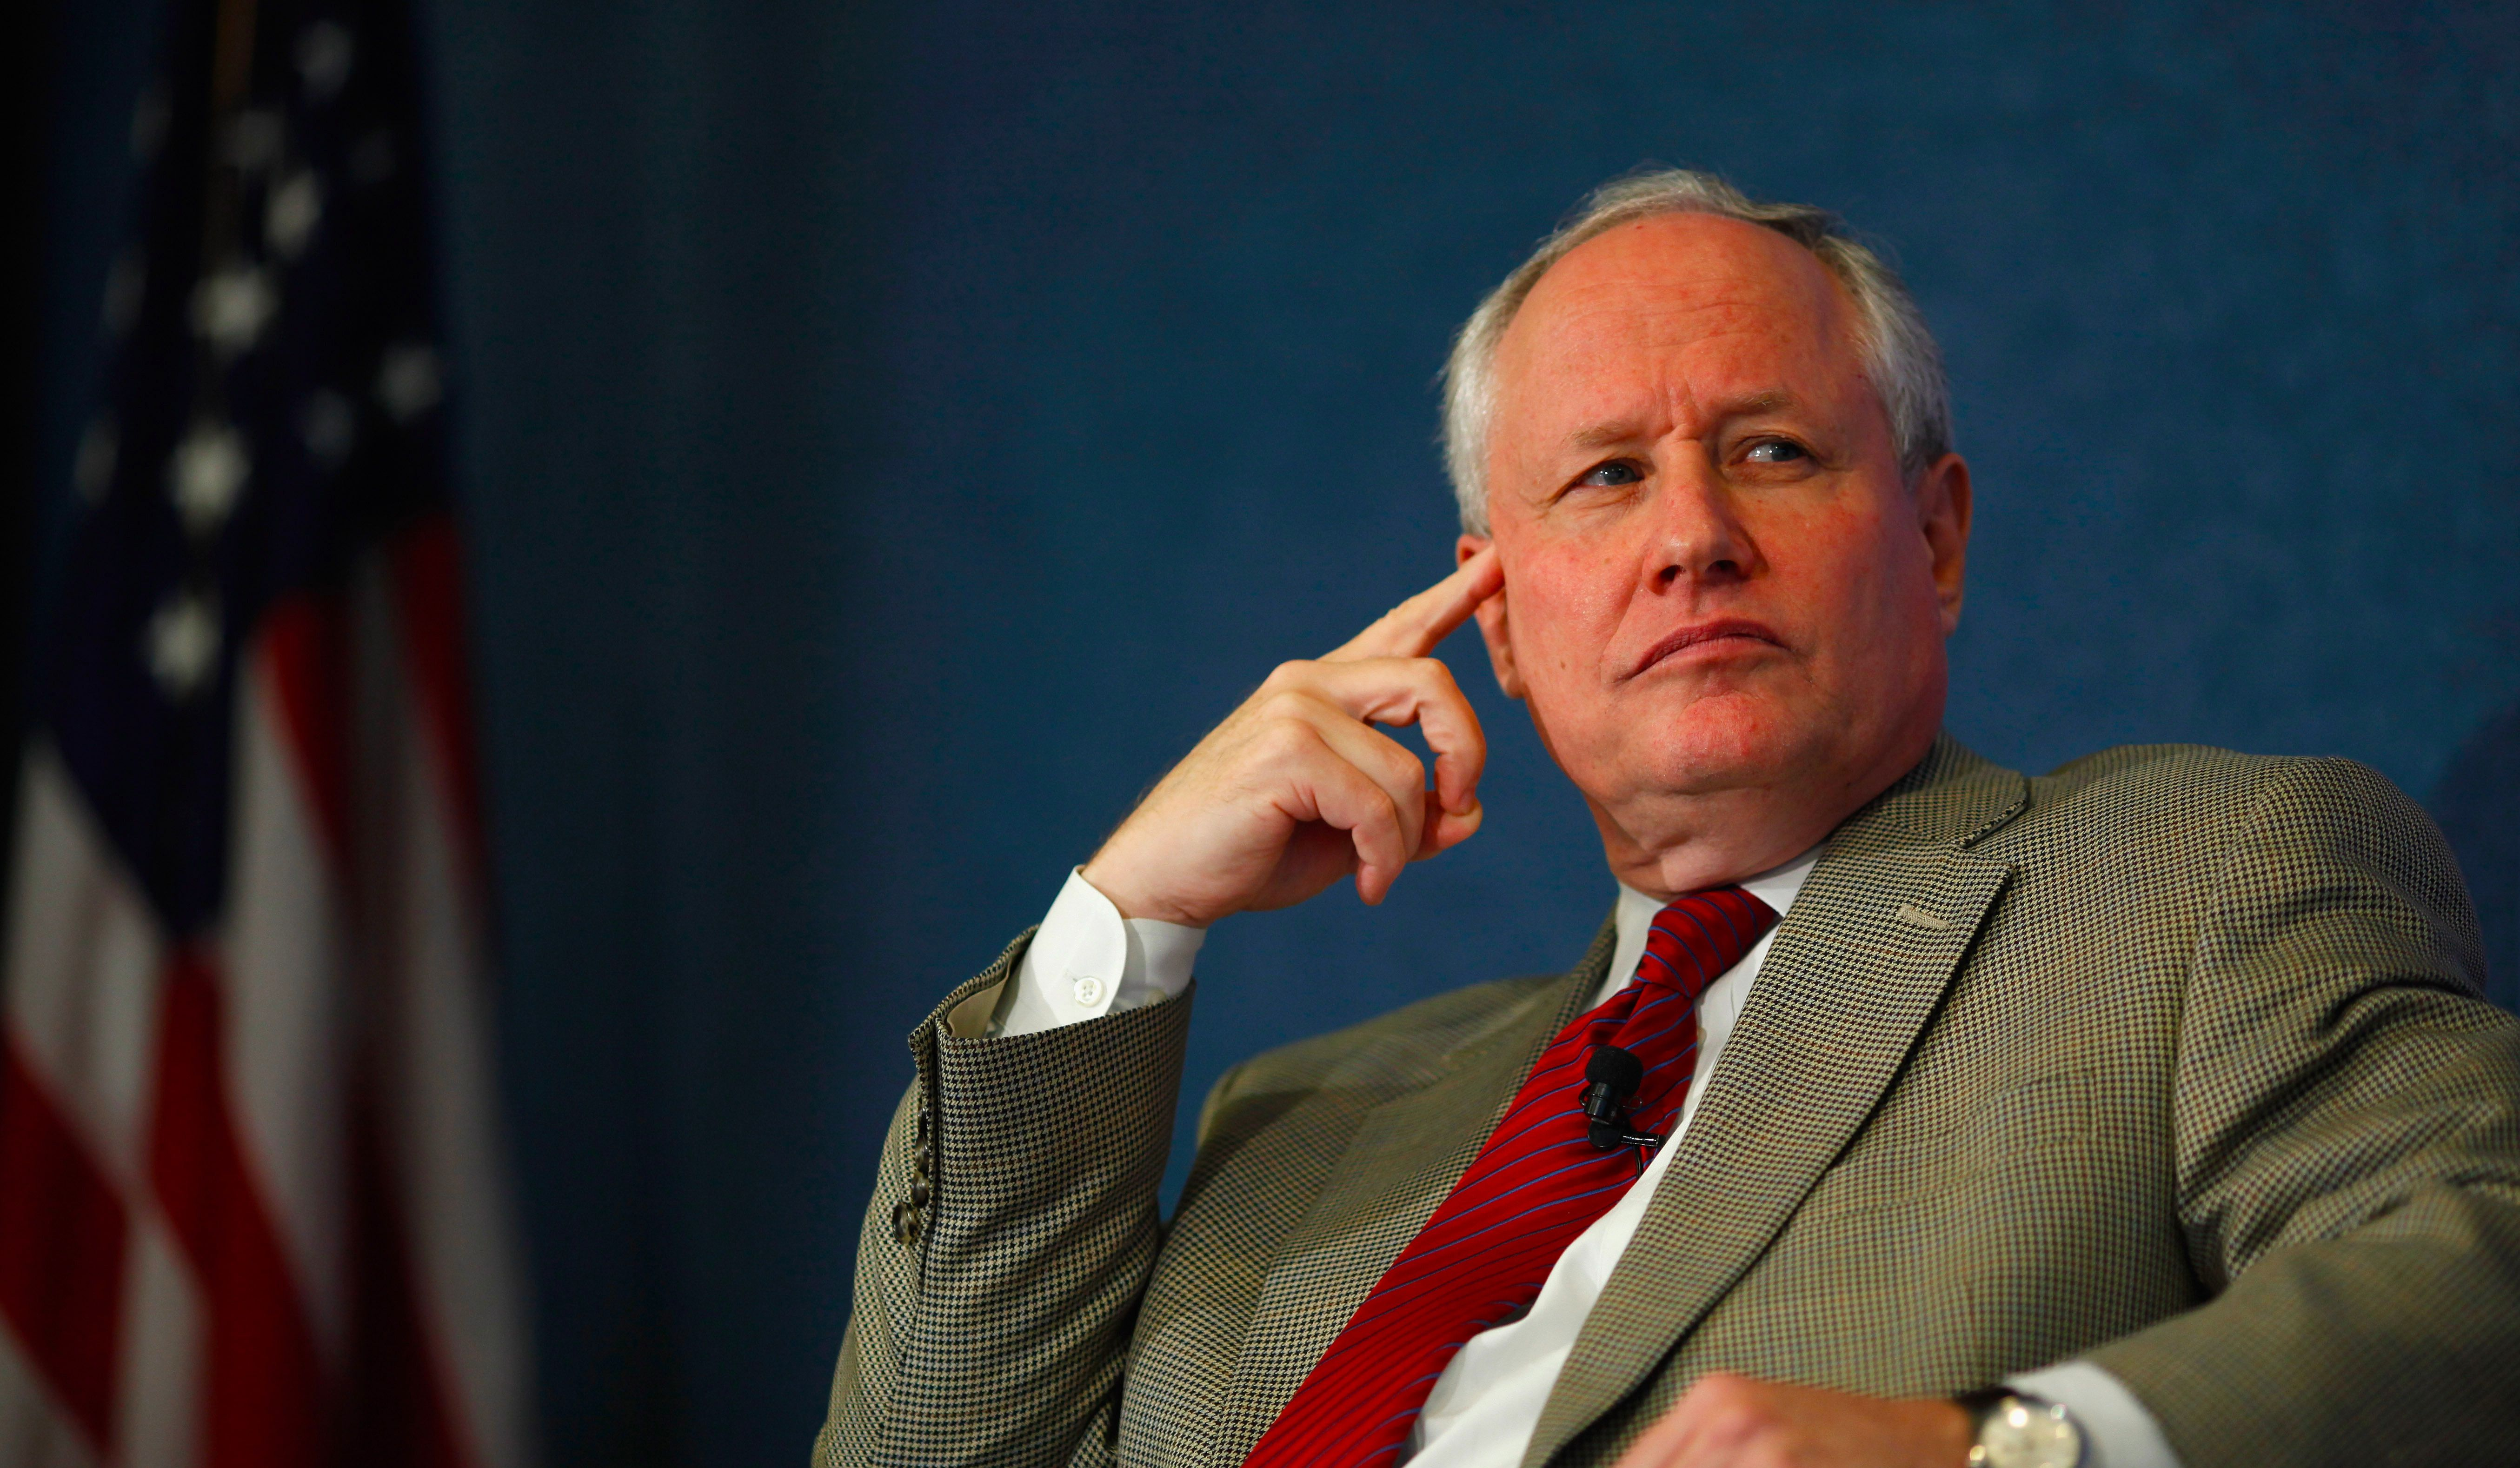 William Kristol in Washington D.C. on October 3, 2011.